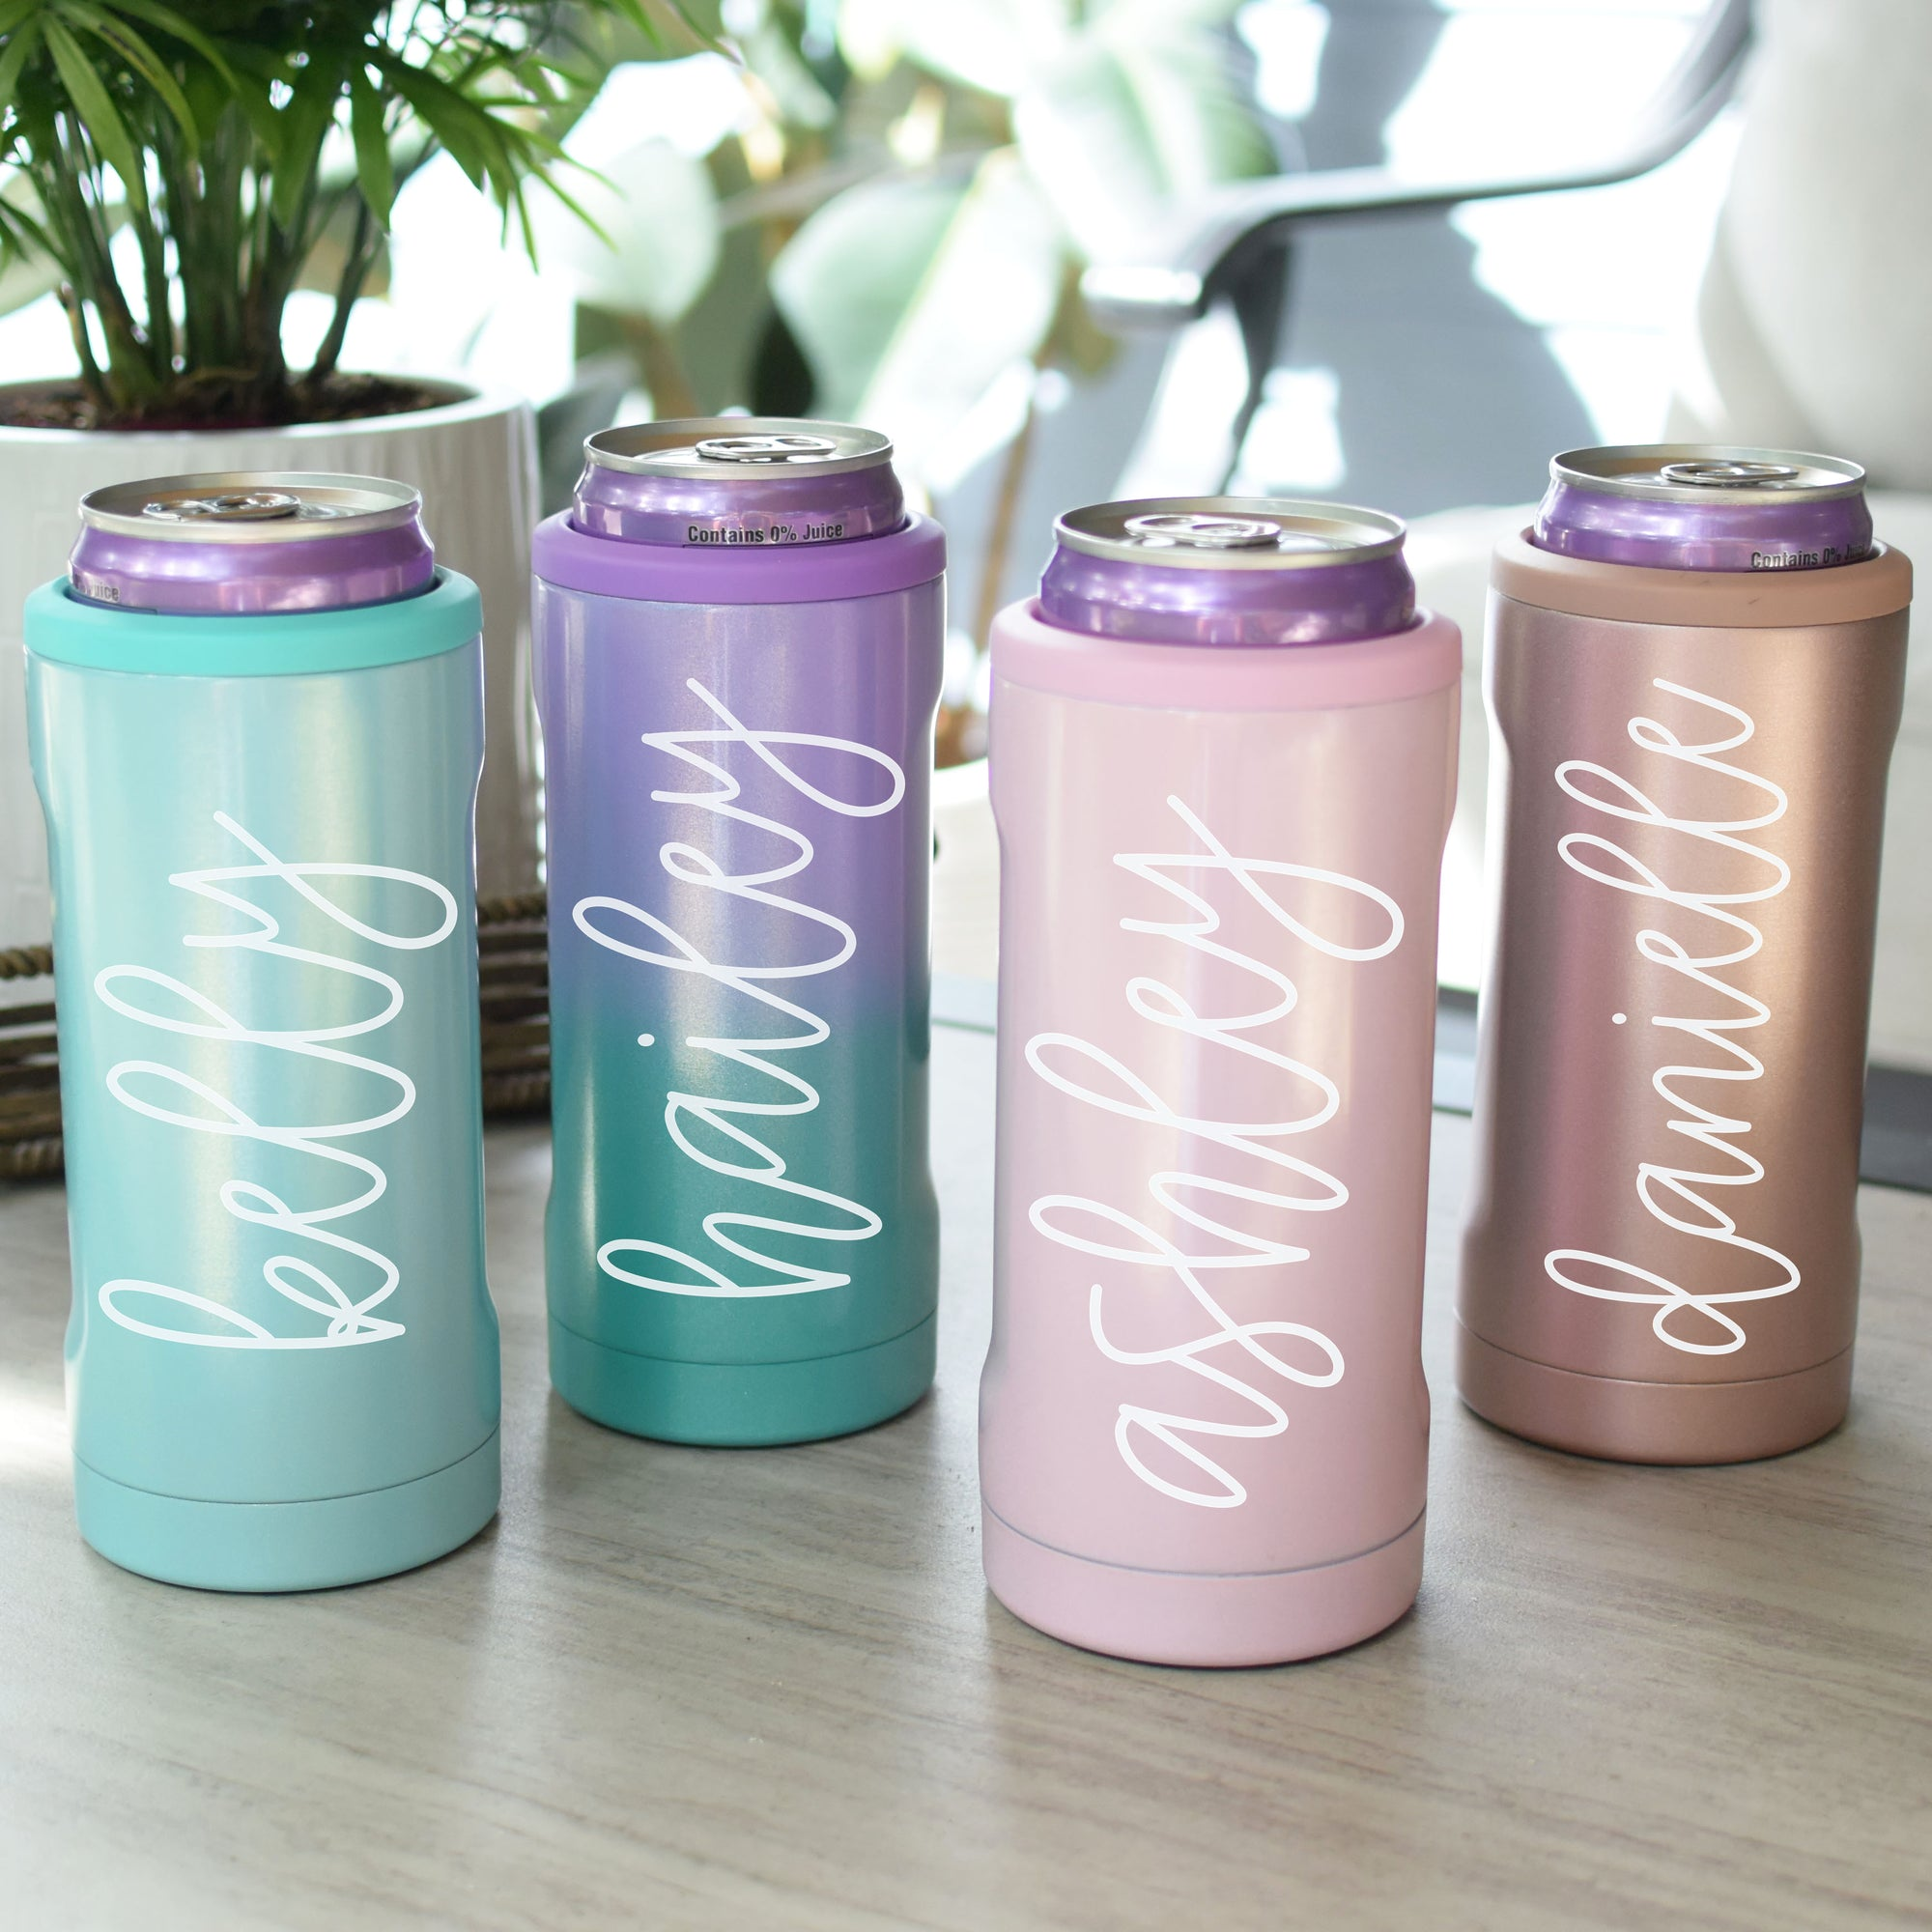 BrüMate Hopsulator Slim | Personalized Skinny Can Coolers - The White Invite